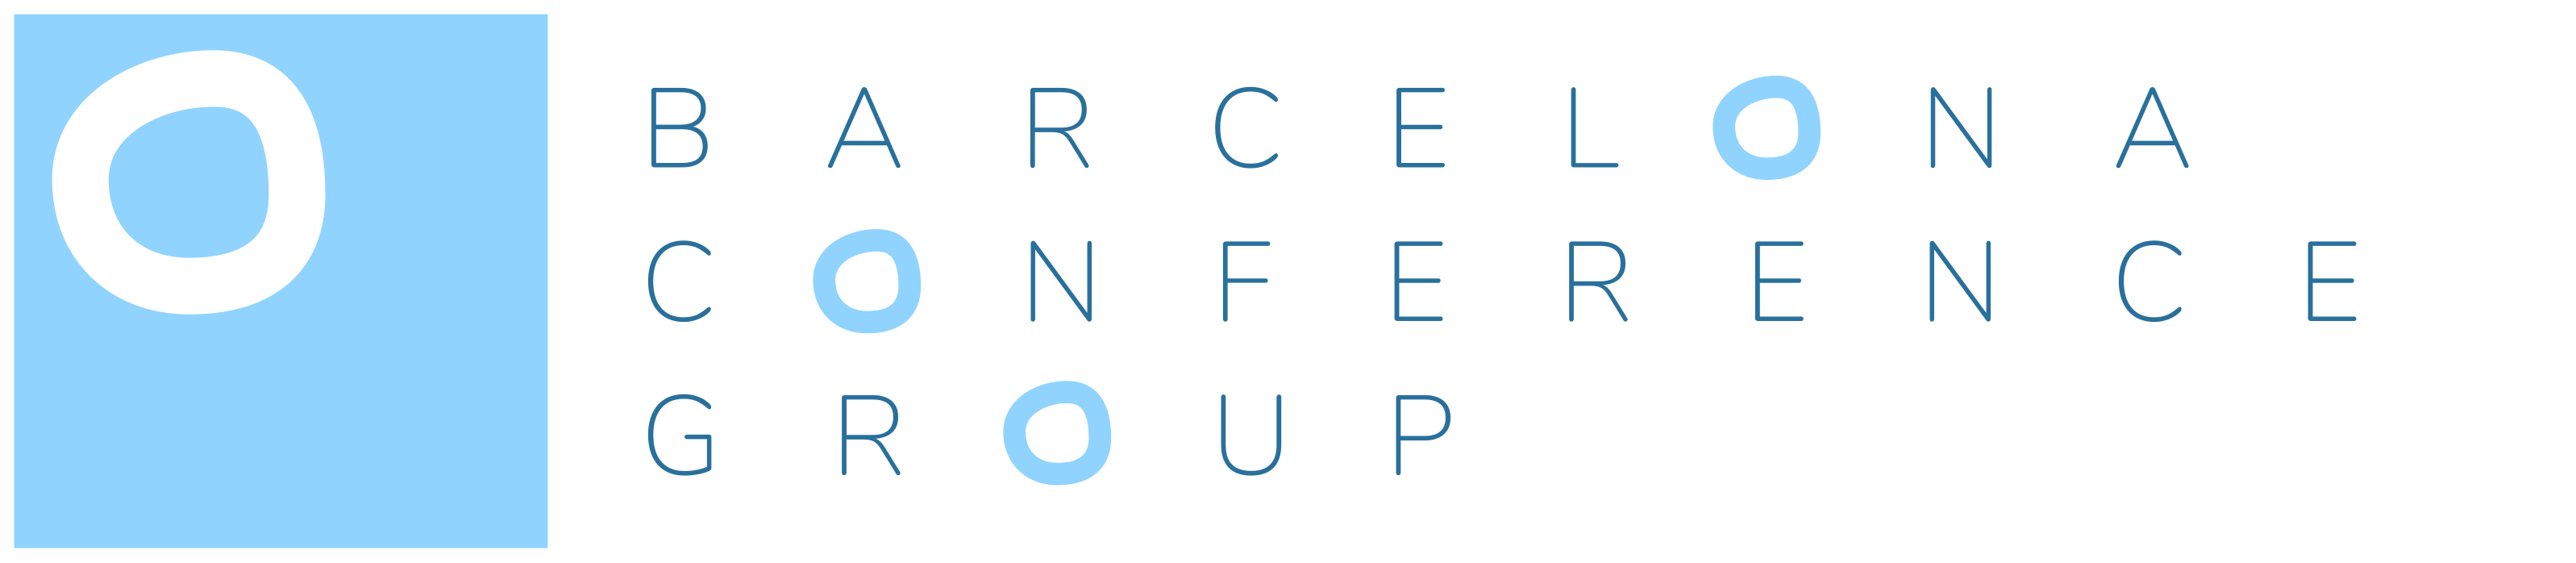 Barcelona Conference Group